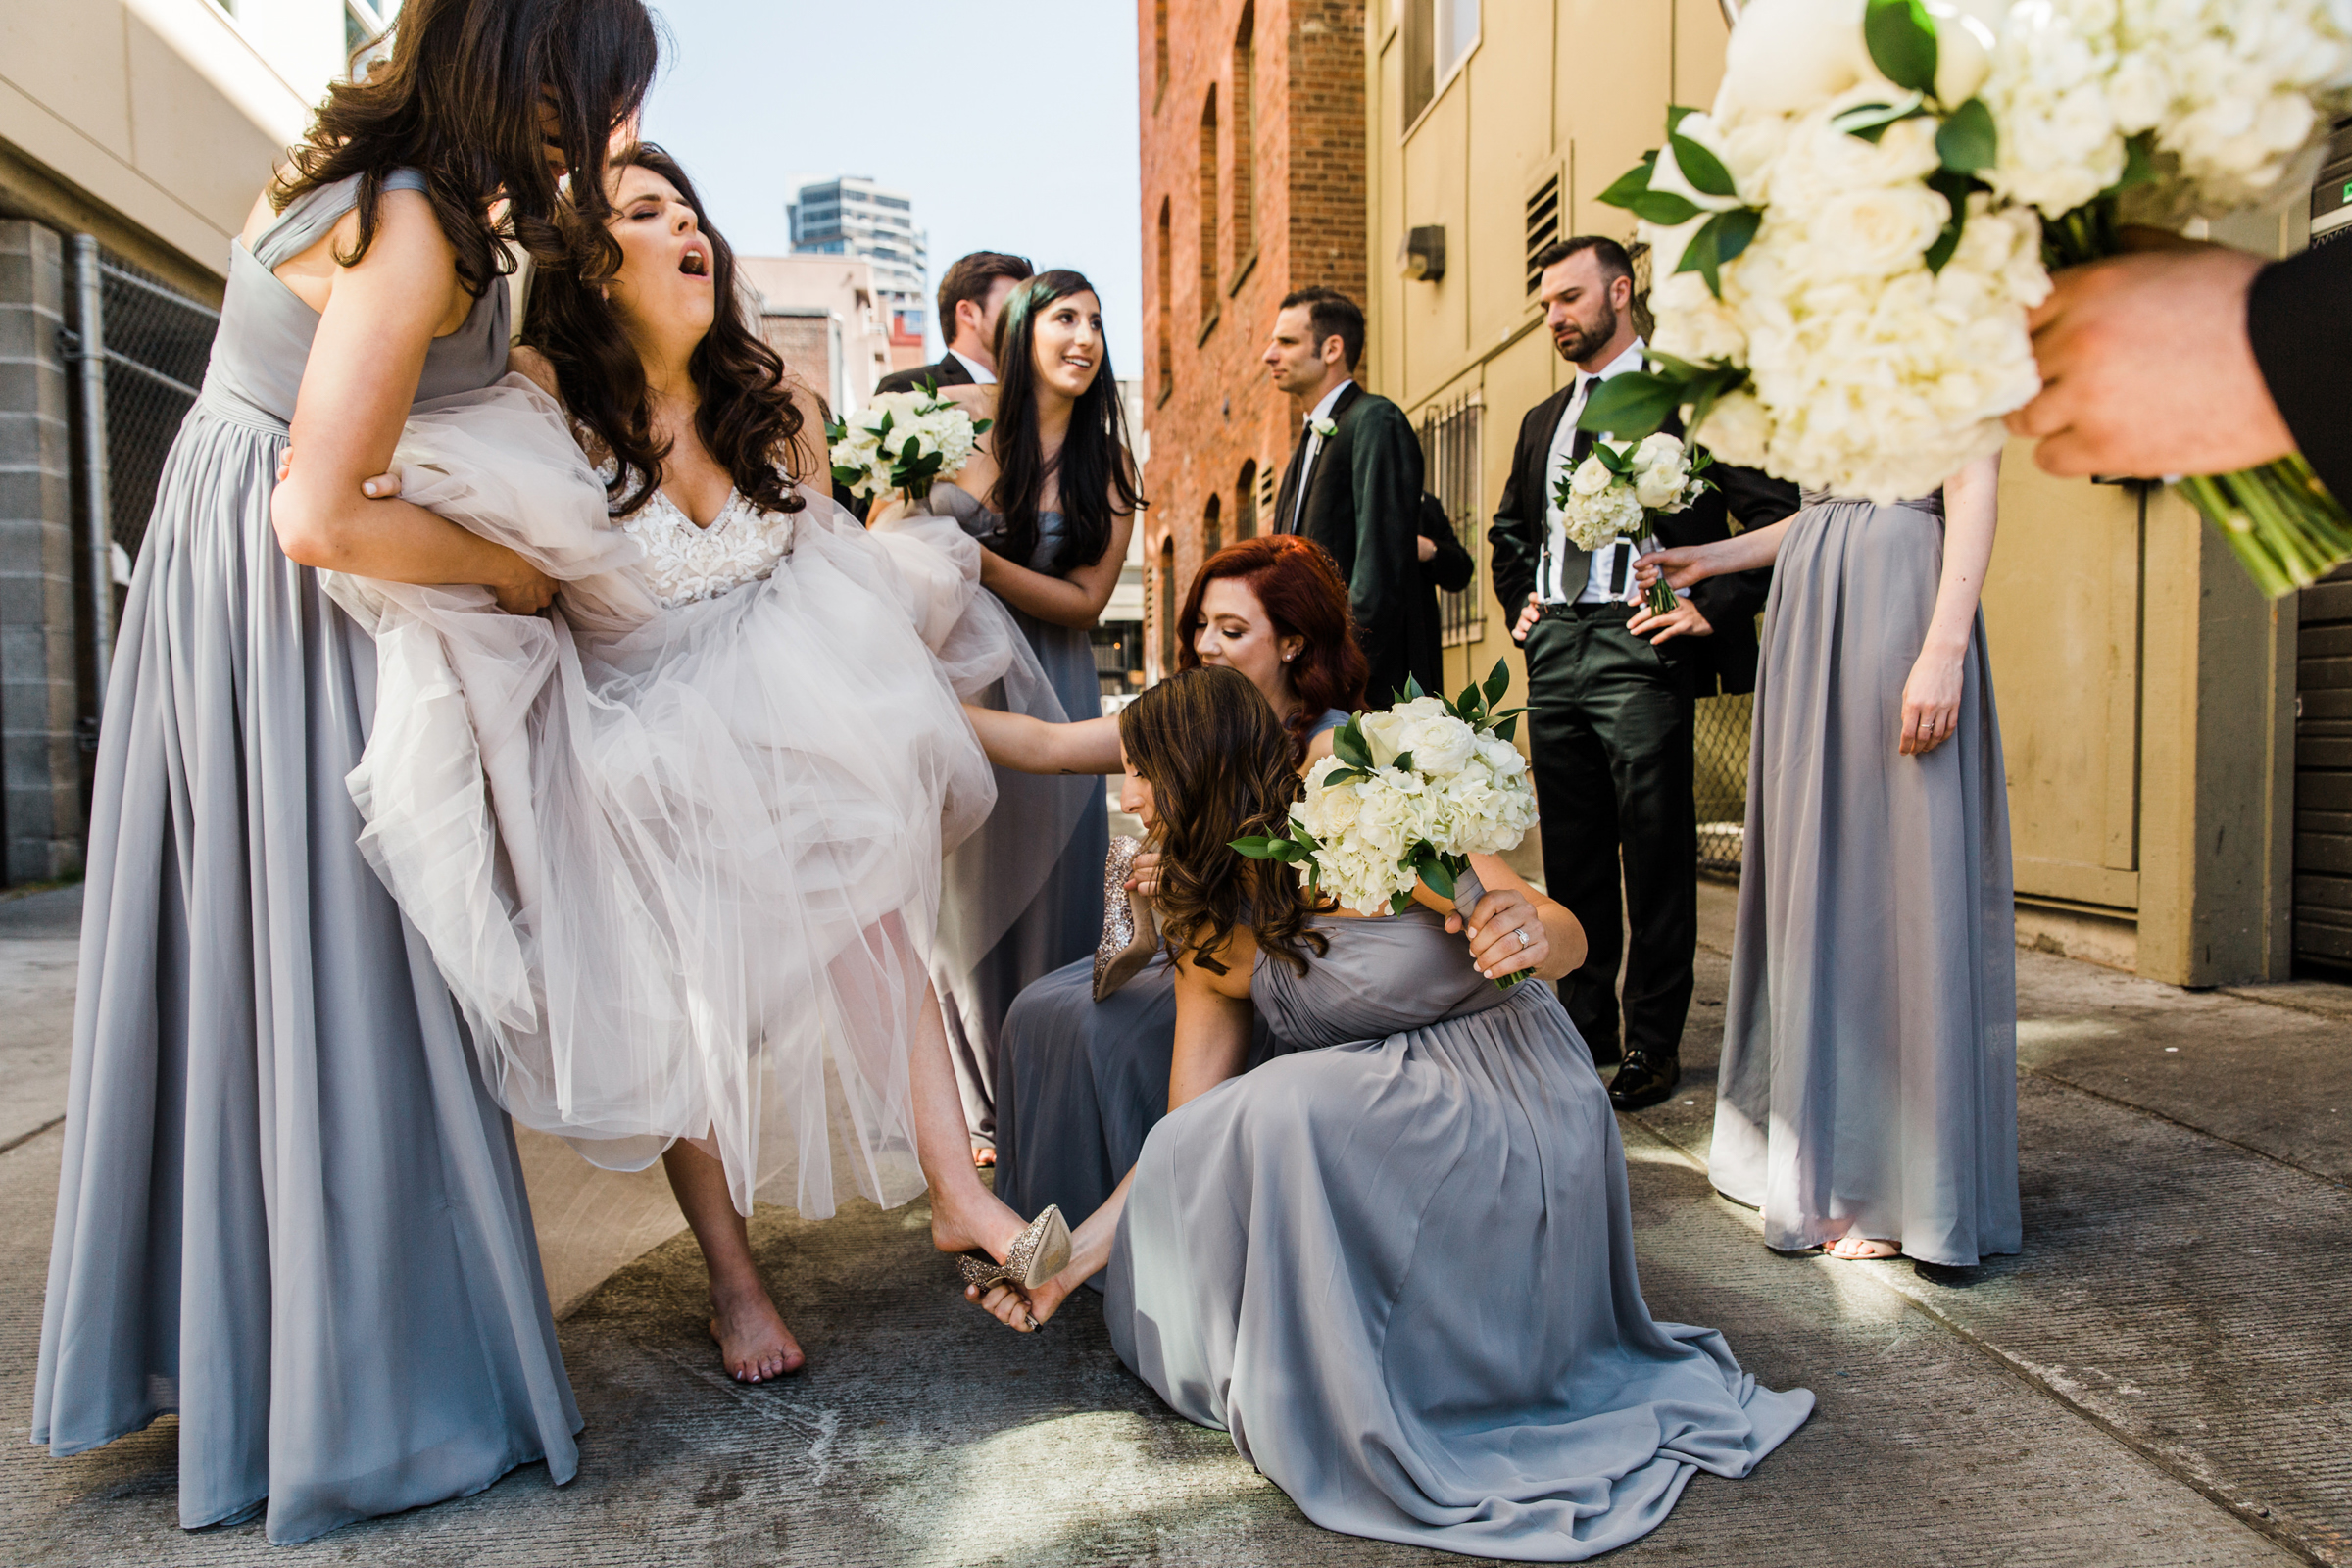 Bride with aching feet has her shoes removed - photo by Stephanie Cristalli Photography